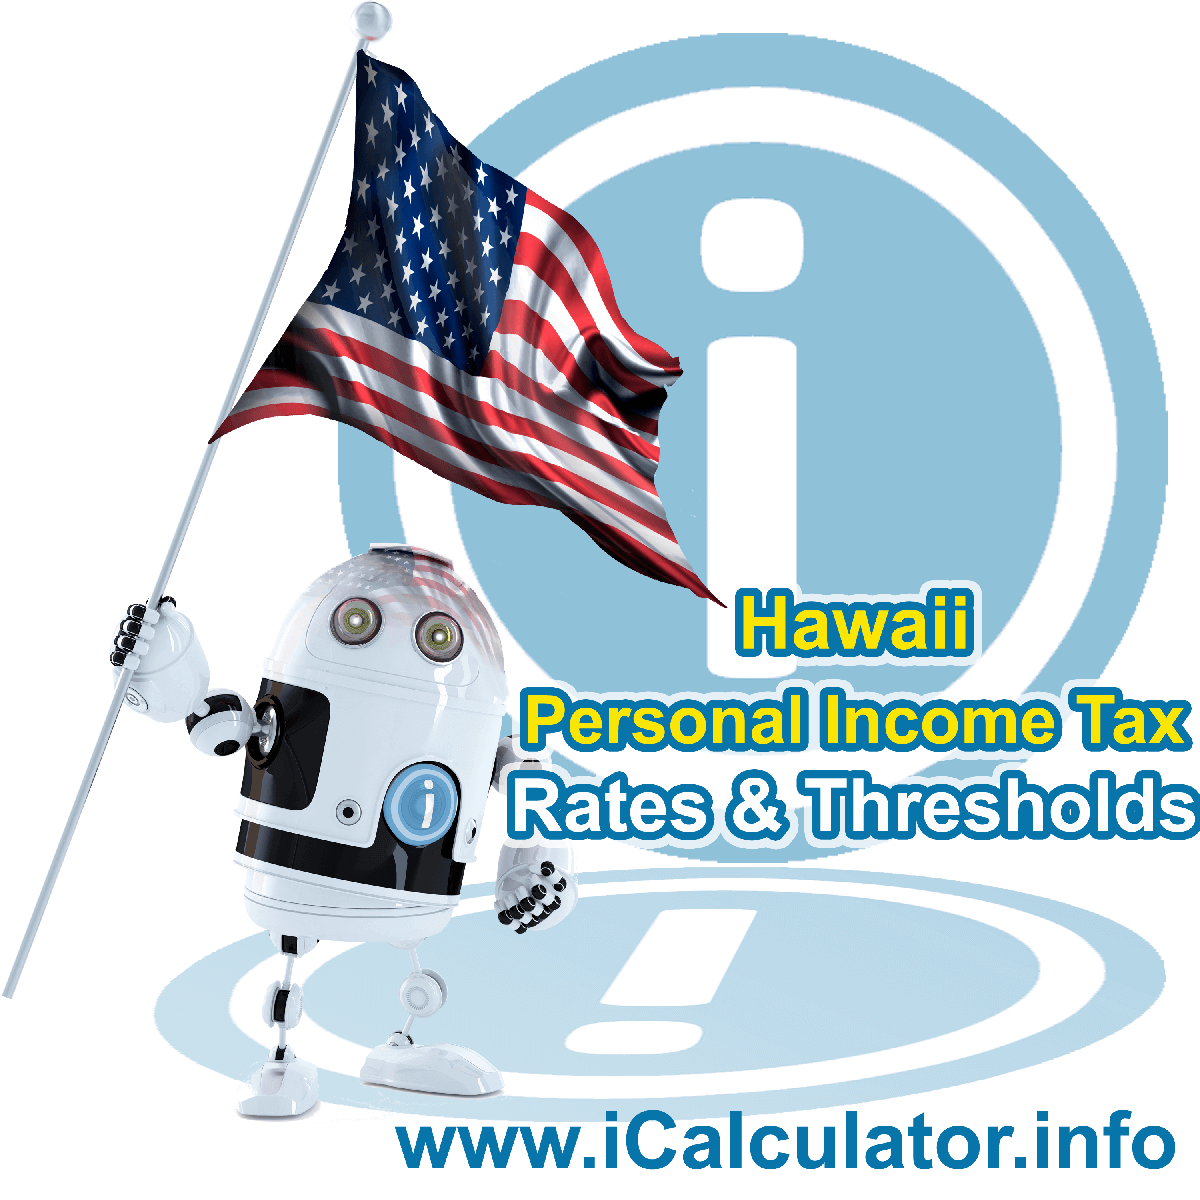 Hawaii State Tax Tables 2017. This image displays details of the Hawaii State Tax Tables for the 2017 tax return year which is provided in support of the 2017 US Tax Calculator